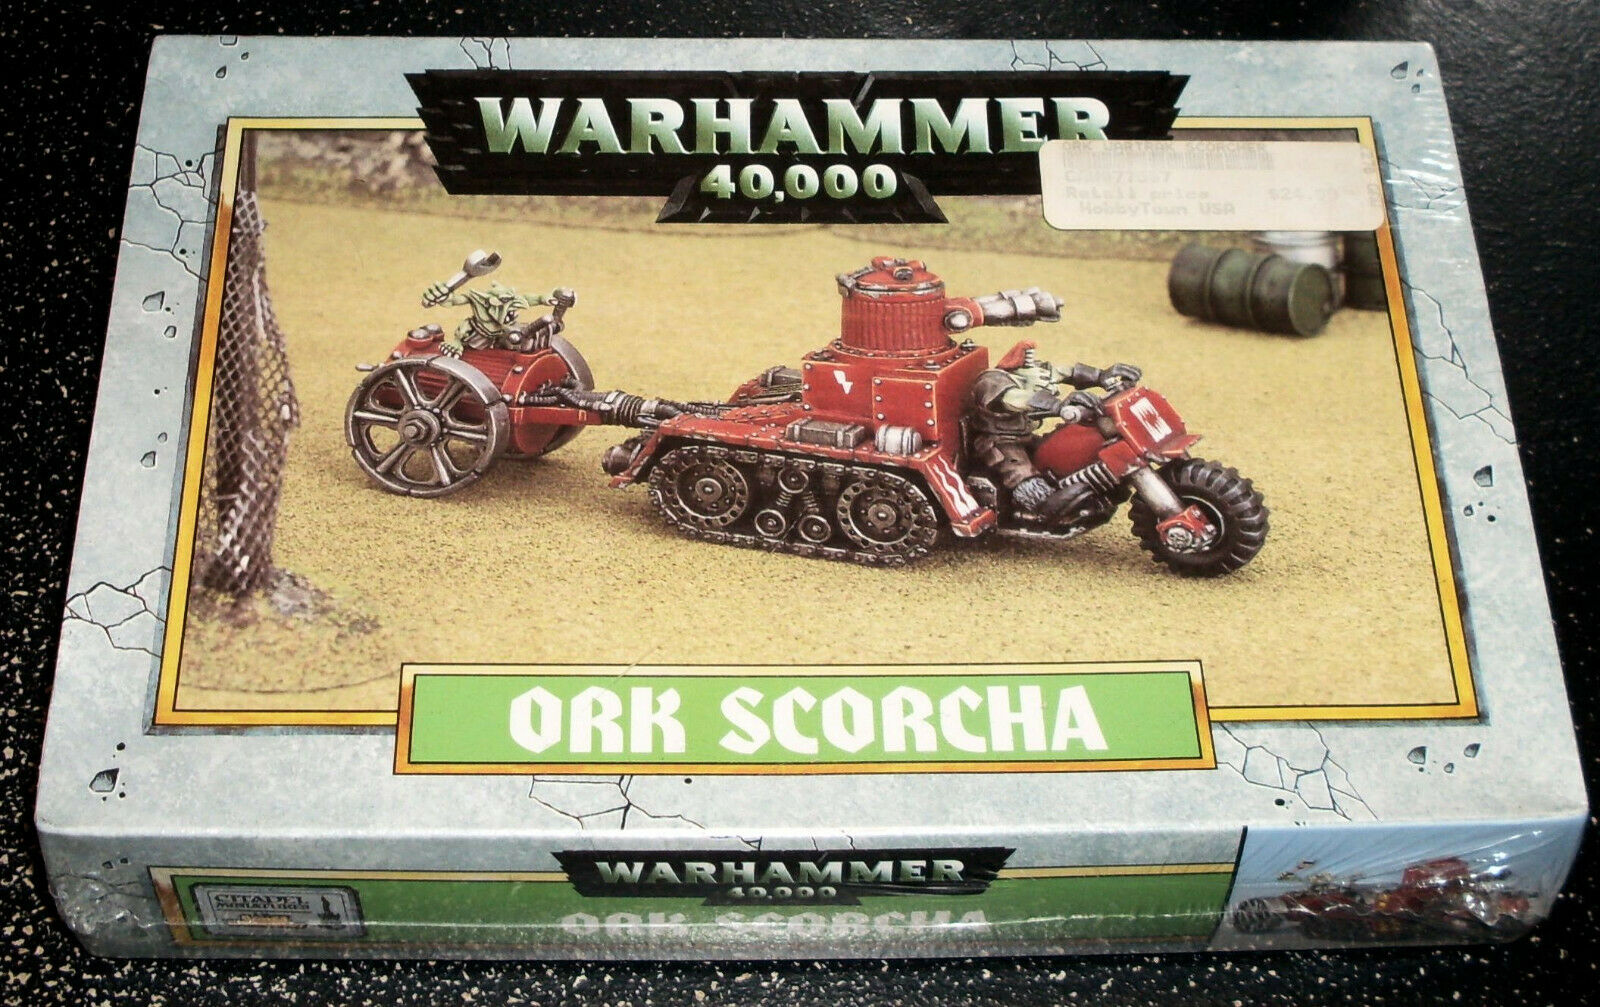 Scorcha Warhammer 40K - New Shrink Wrapped